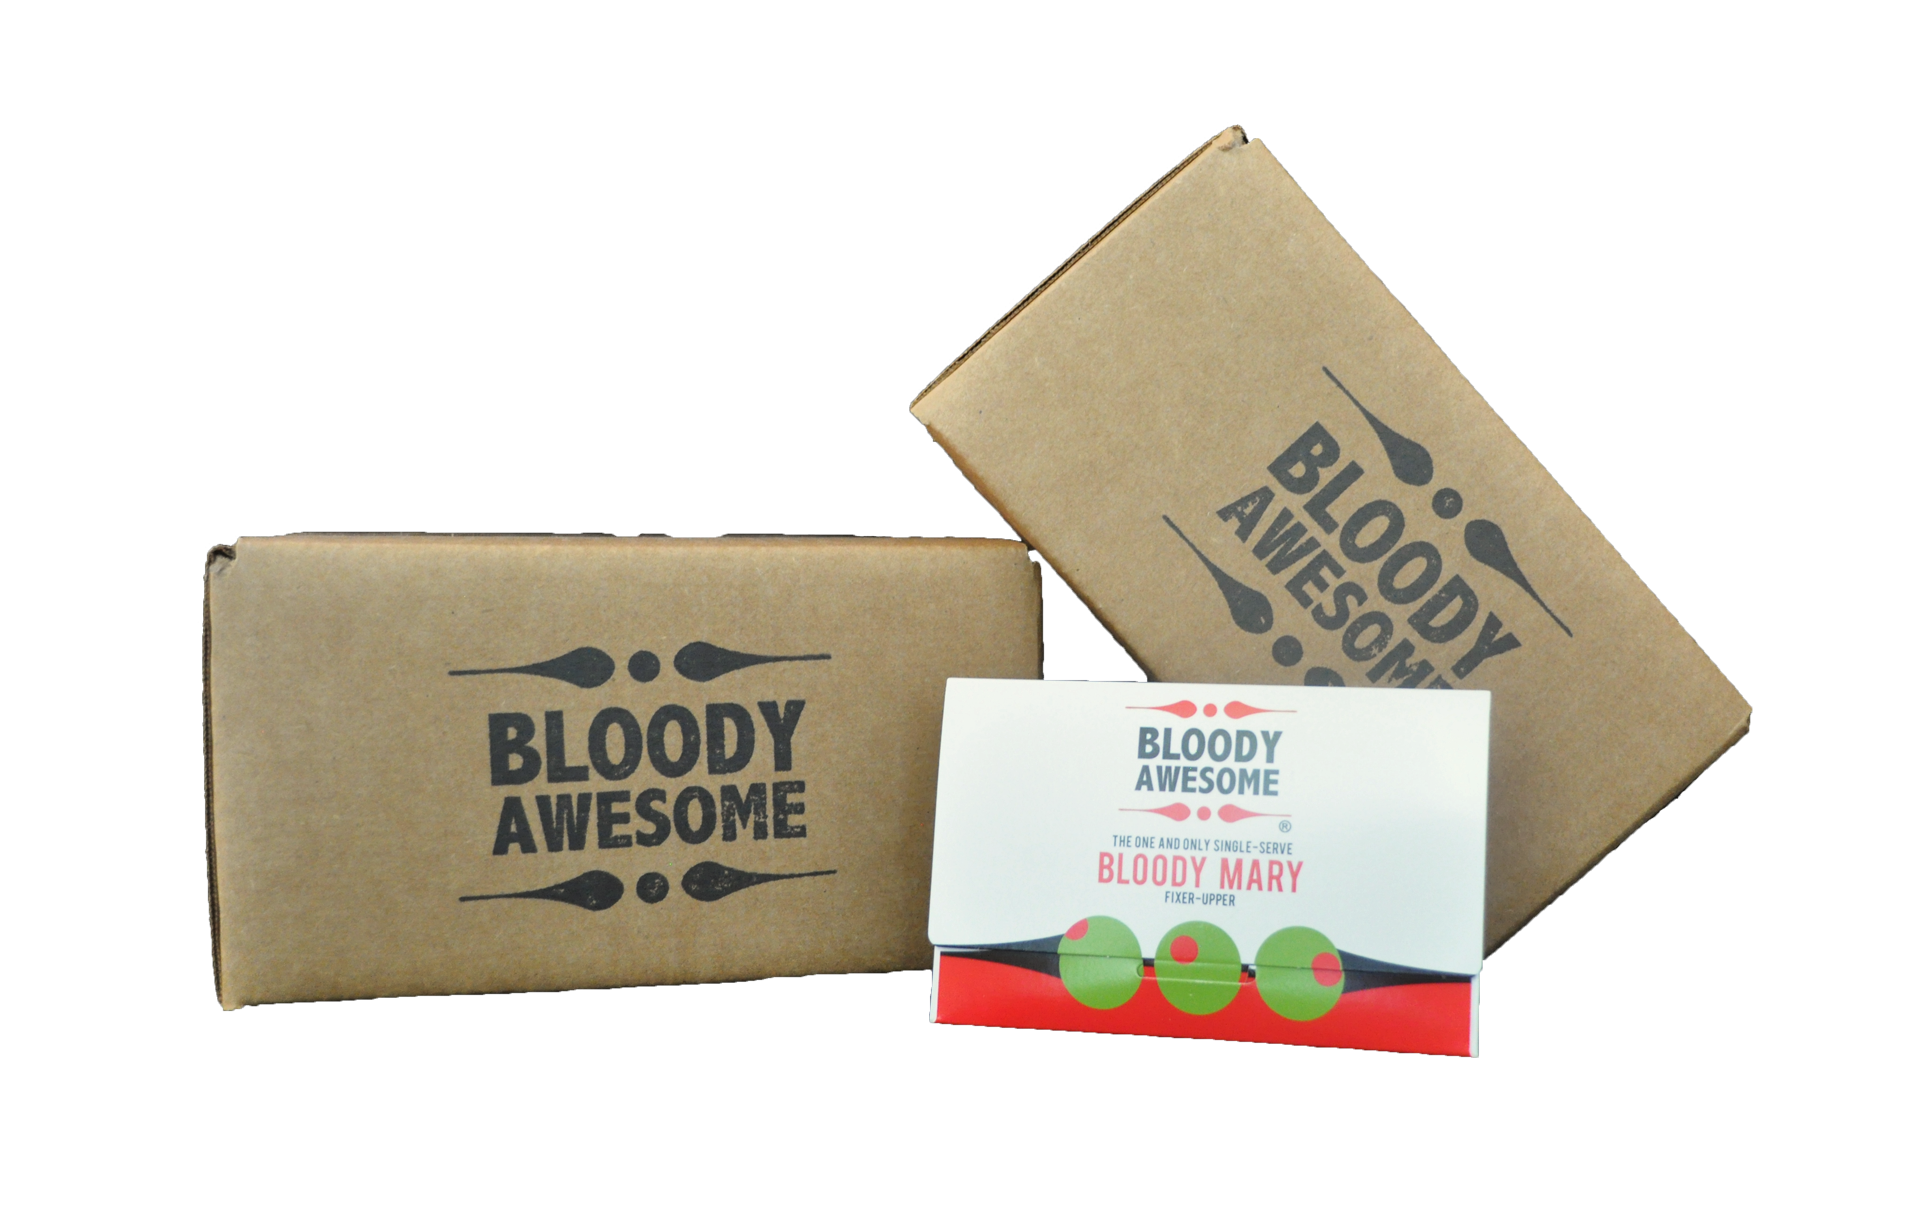 Box of 50 Bloody Awesome envelopes